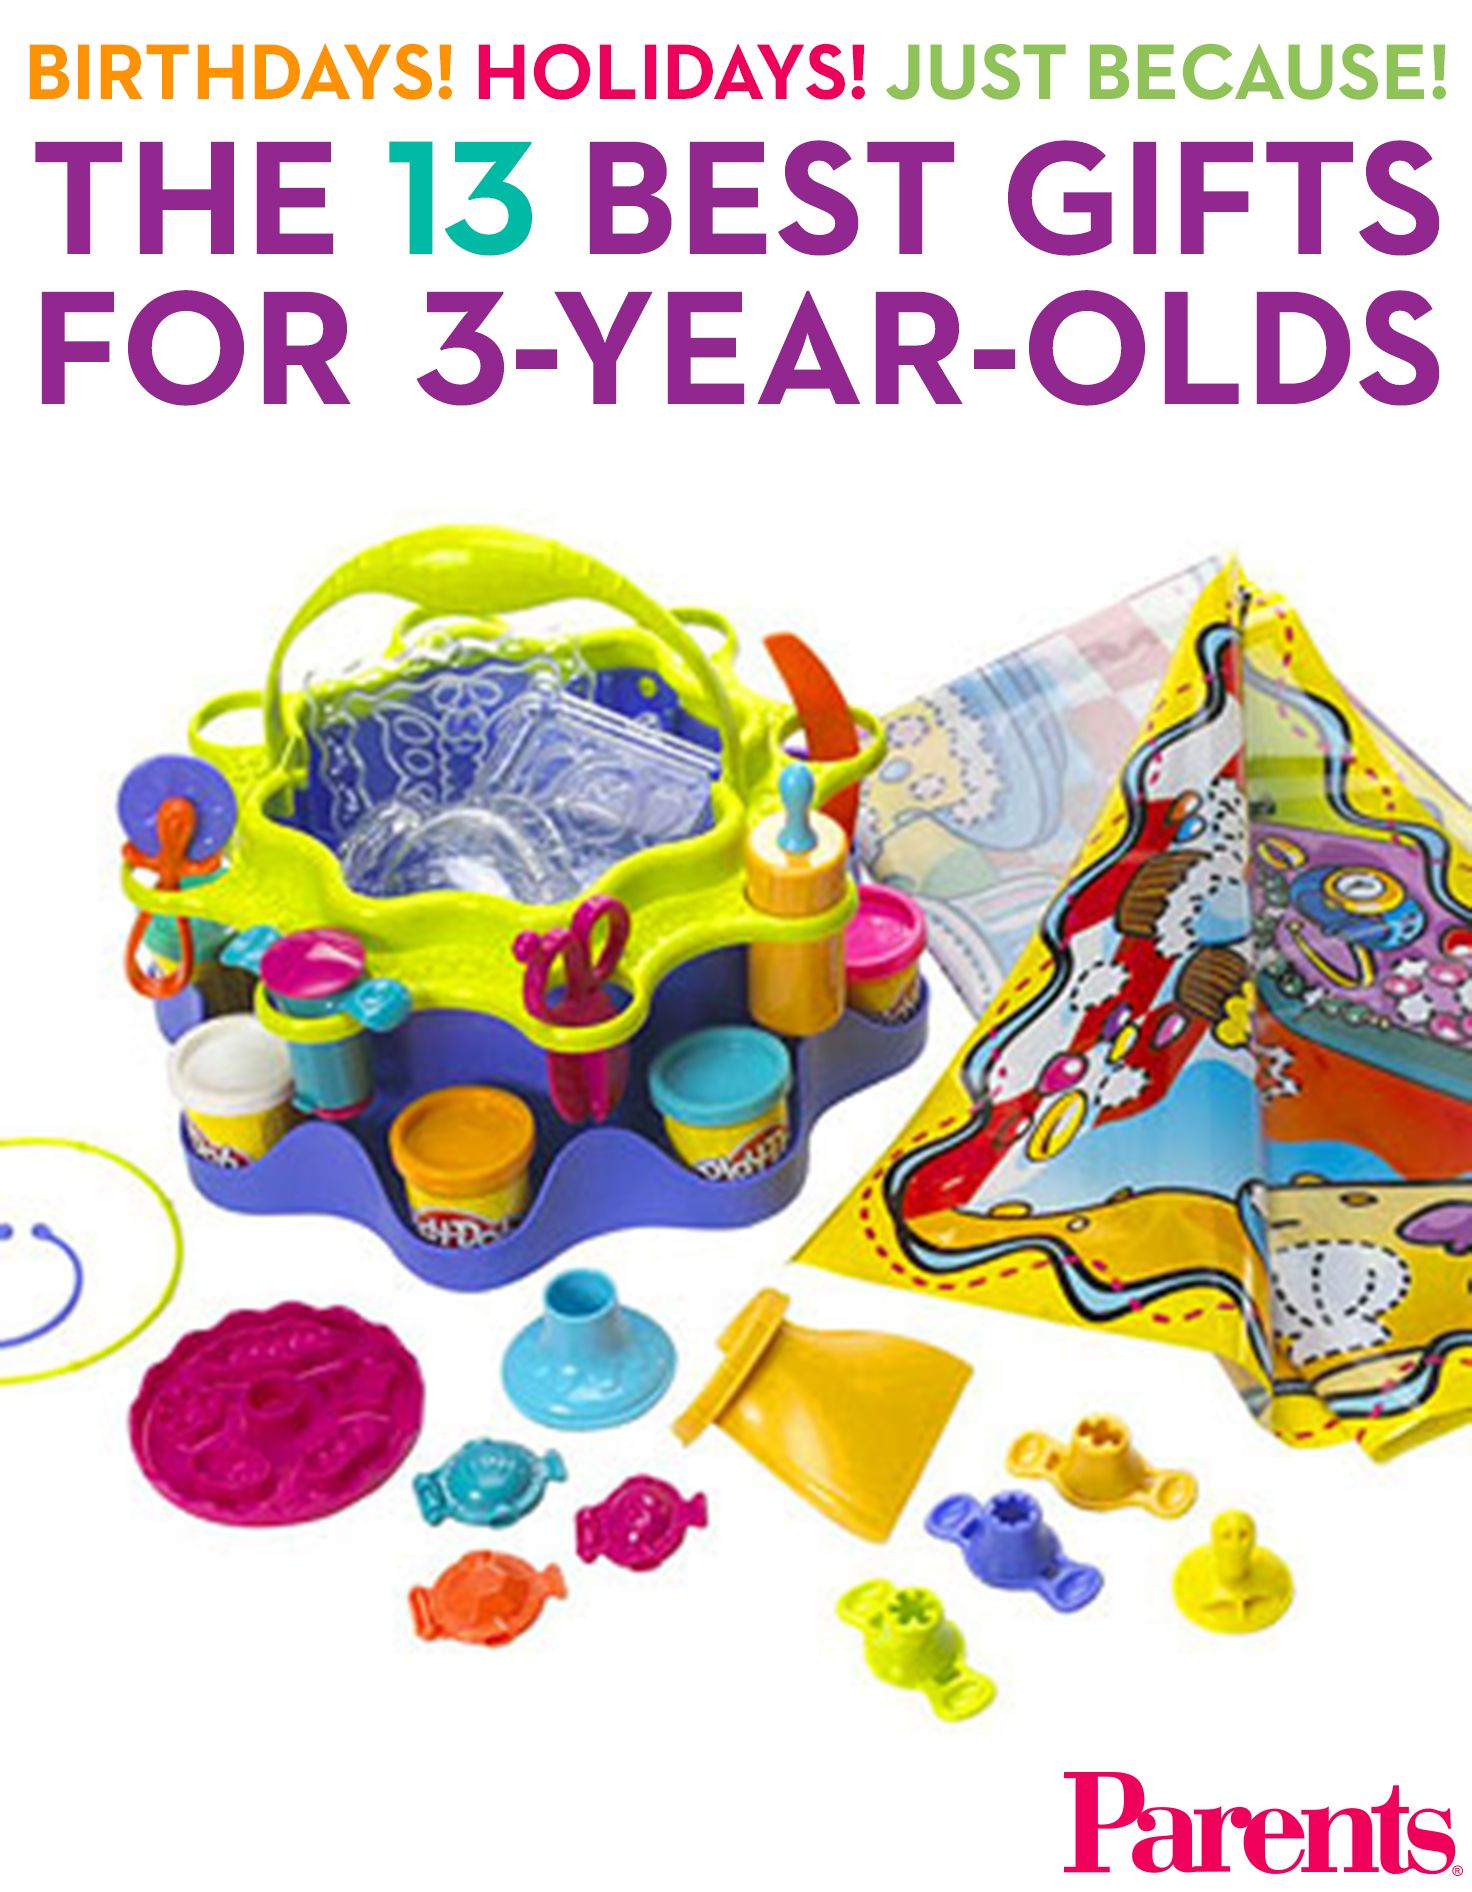 Best Gifts For 3 Year Olds Gifts For 3 Year Old Girls 3